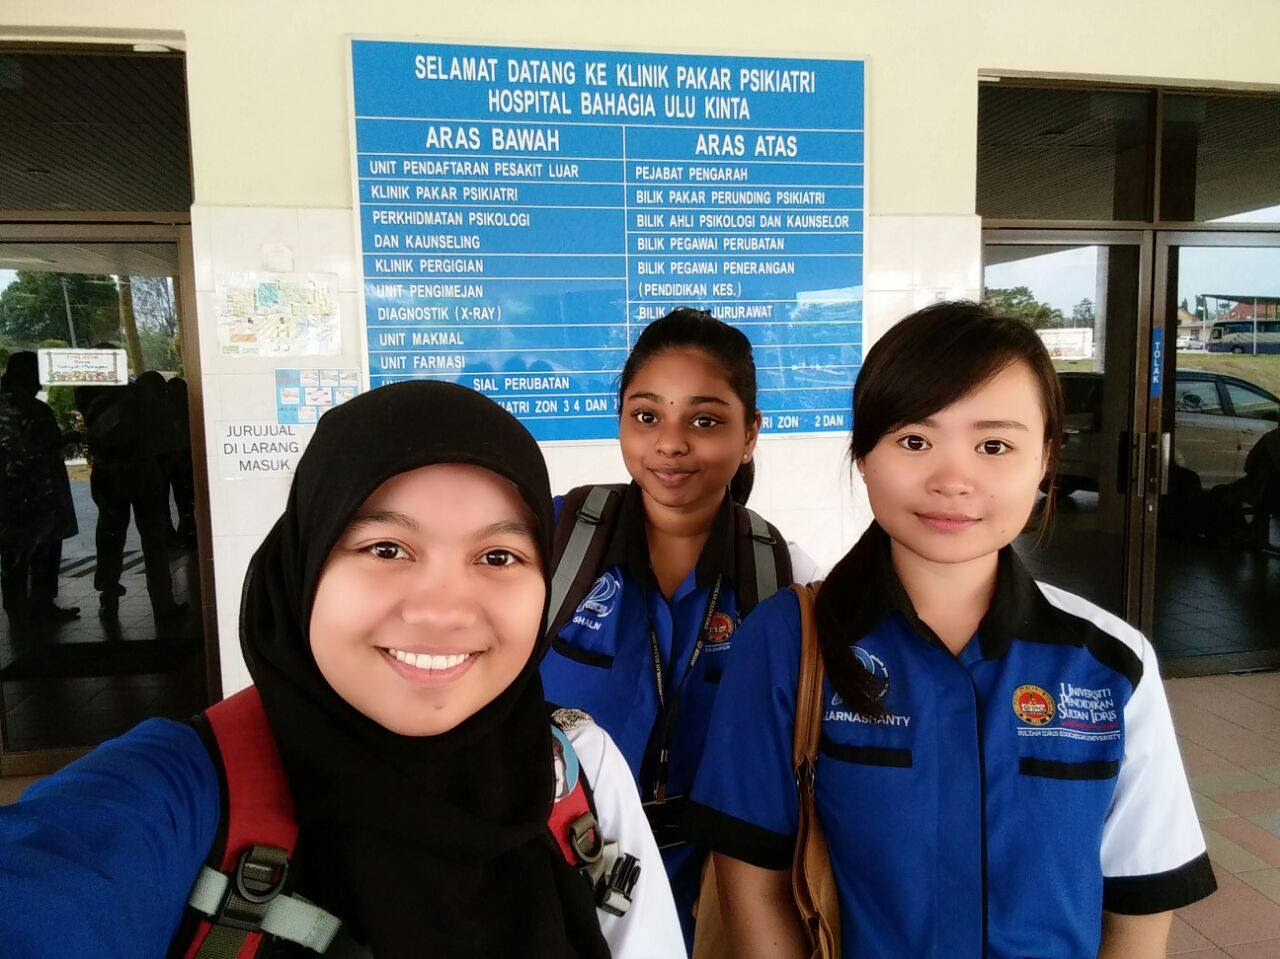 Shalni (middle) with her friends at Hospital Bahagia.